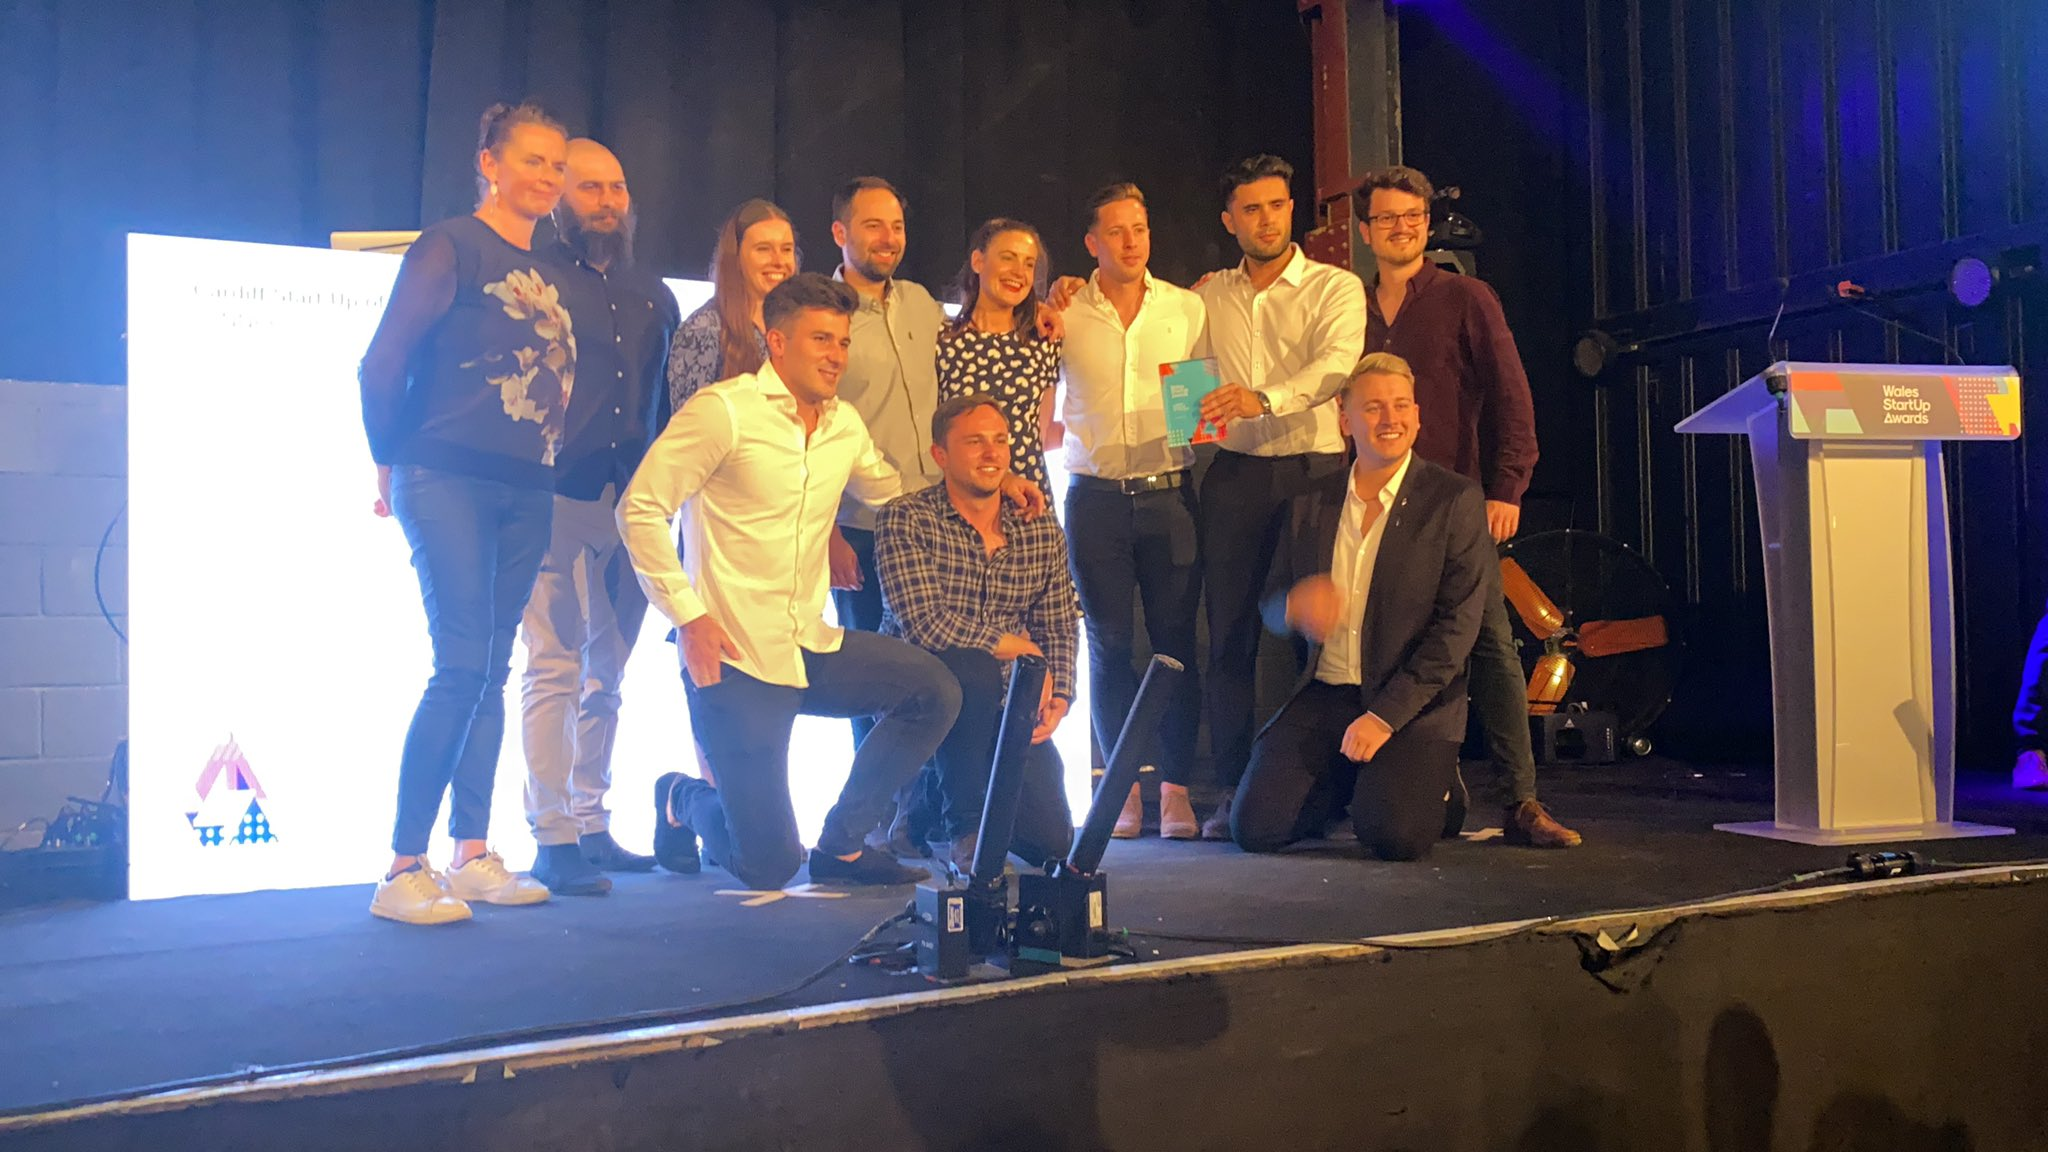 Rising-star Fintech Yoello wins four awards at the Wales Start-up Awards 2021